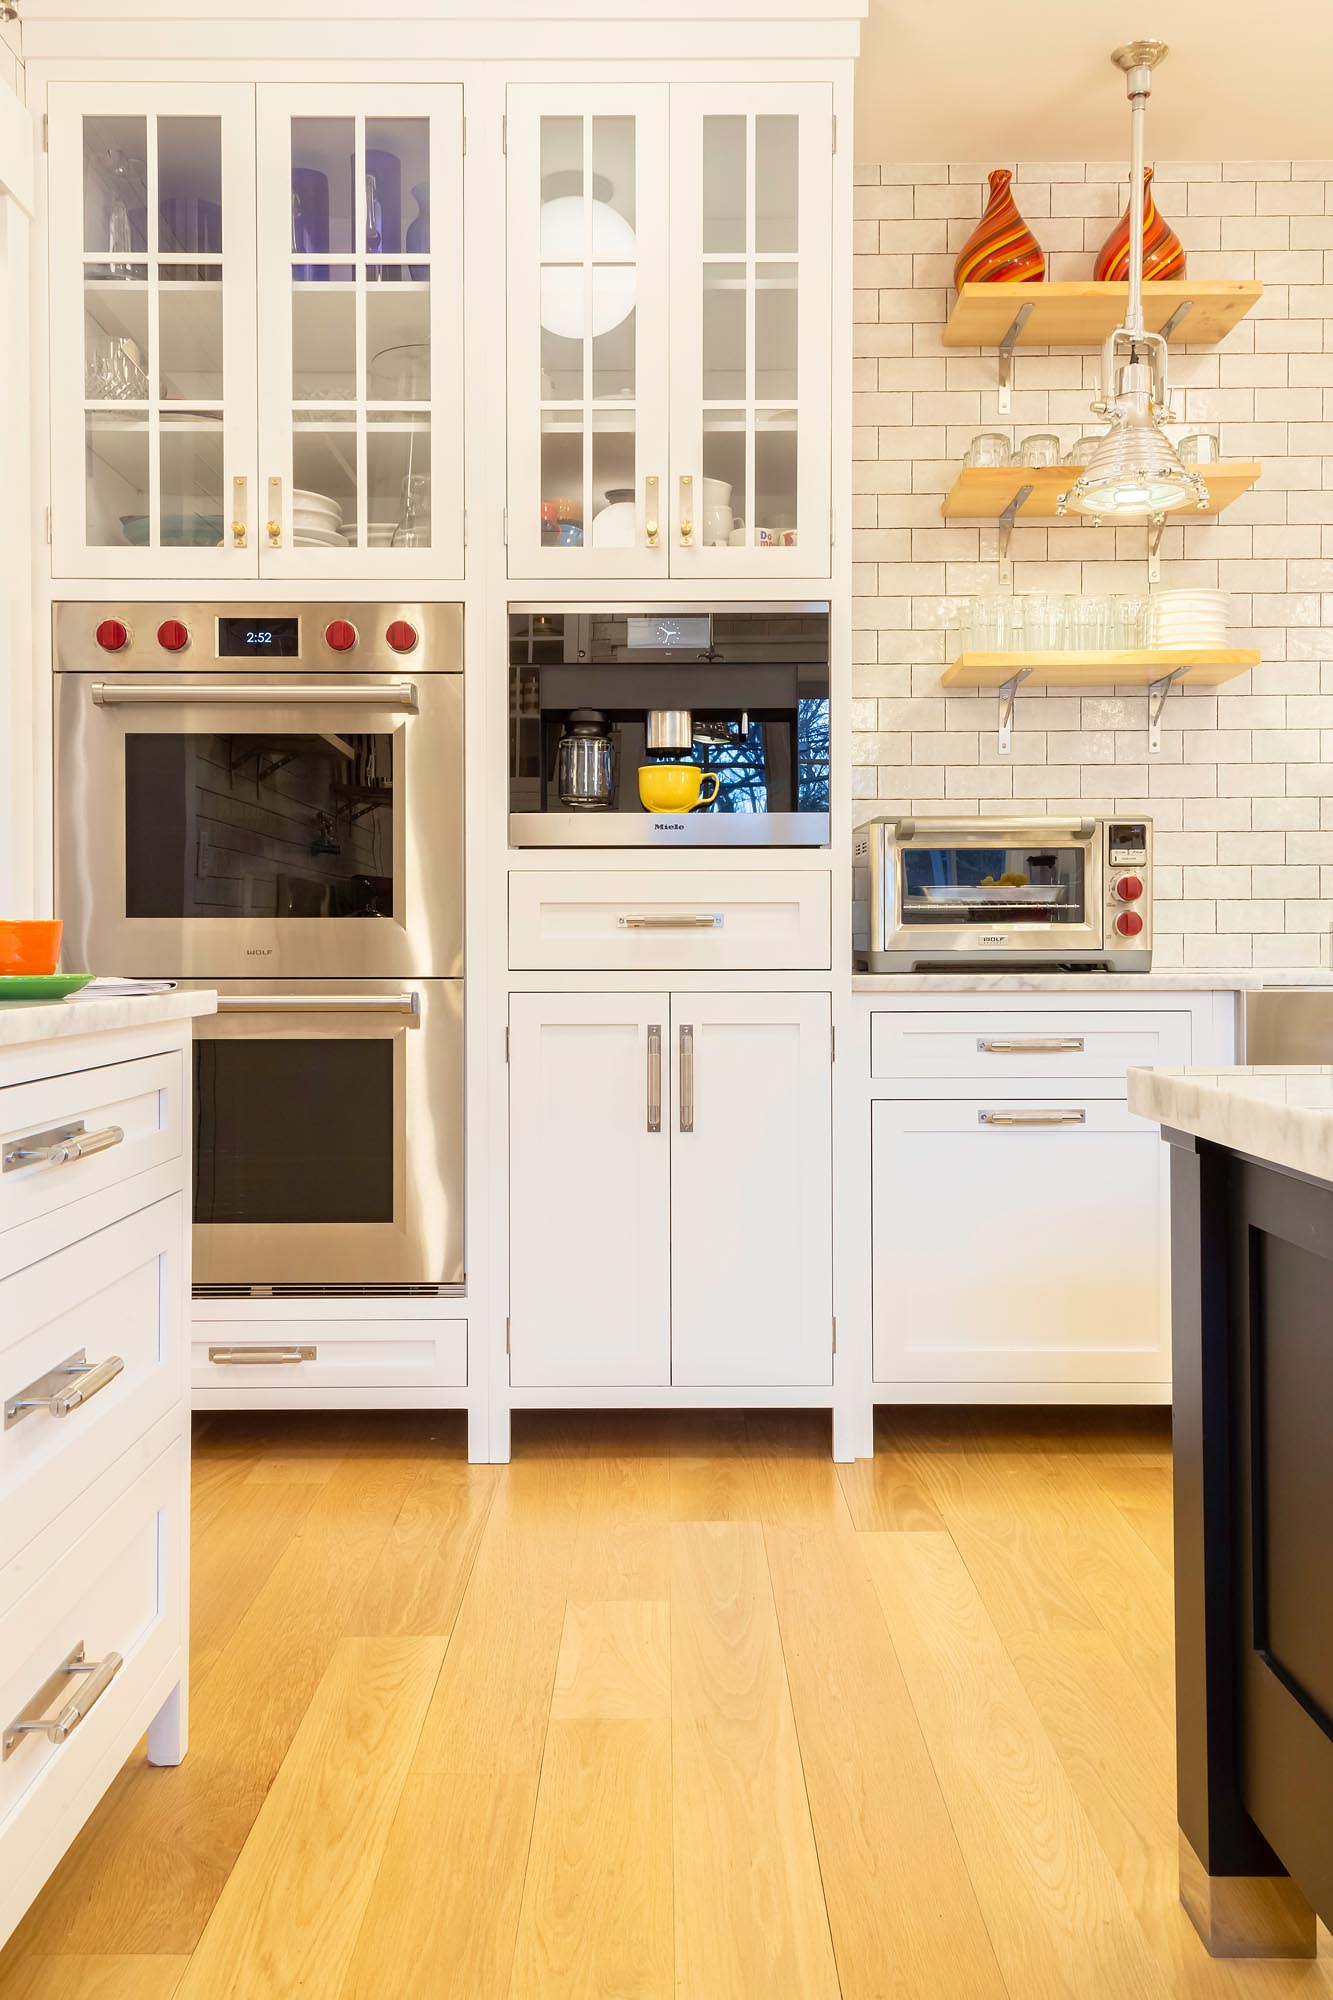 Transitional white kitchen with colorful highlights